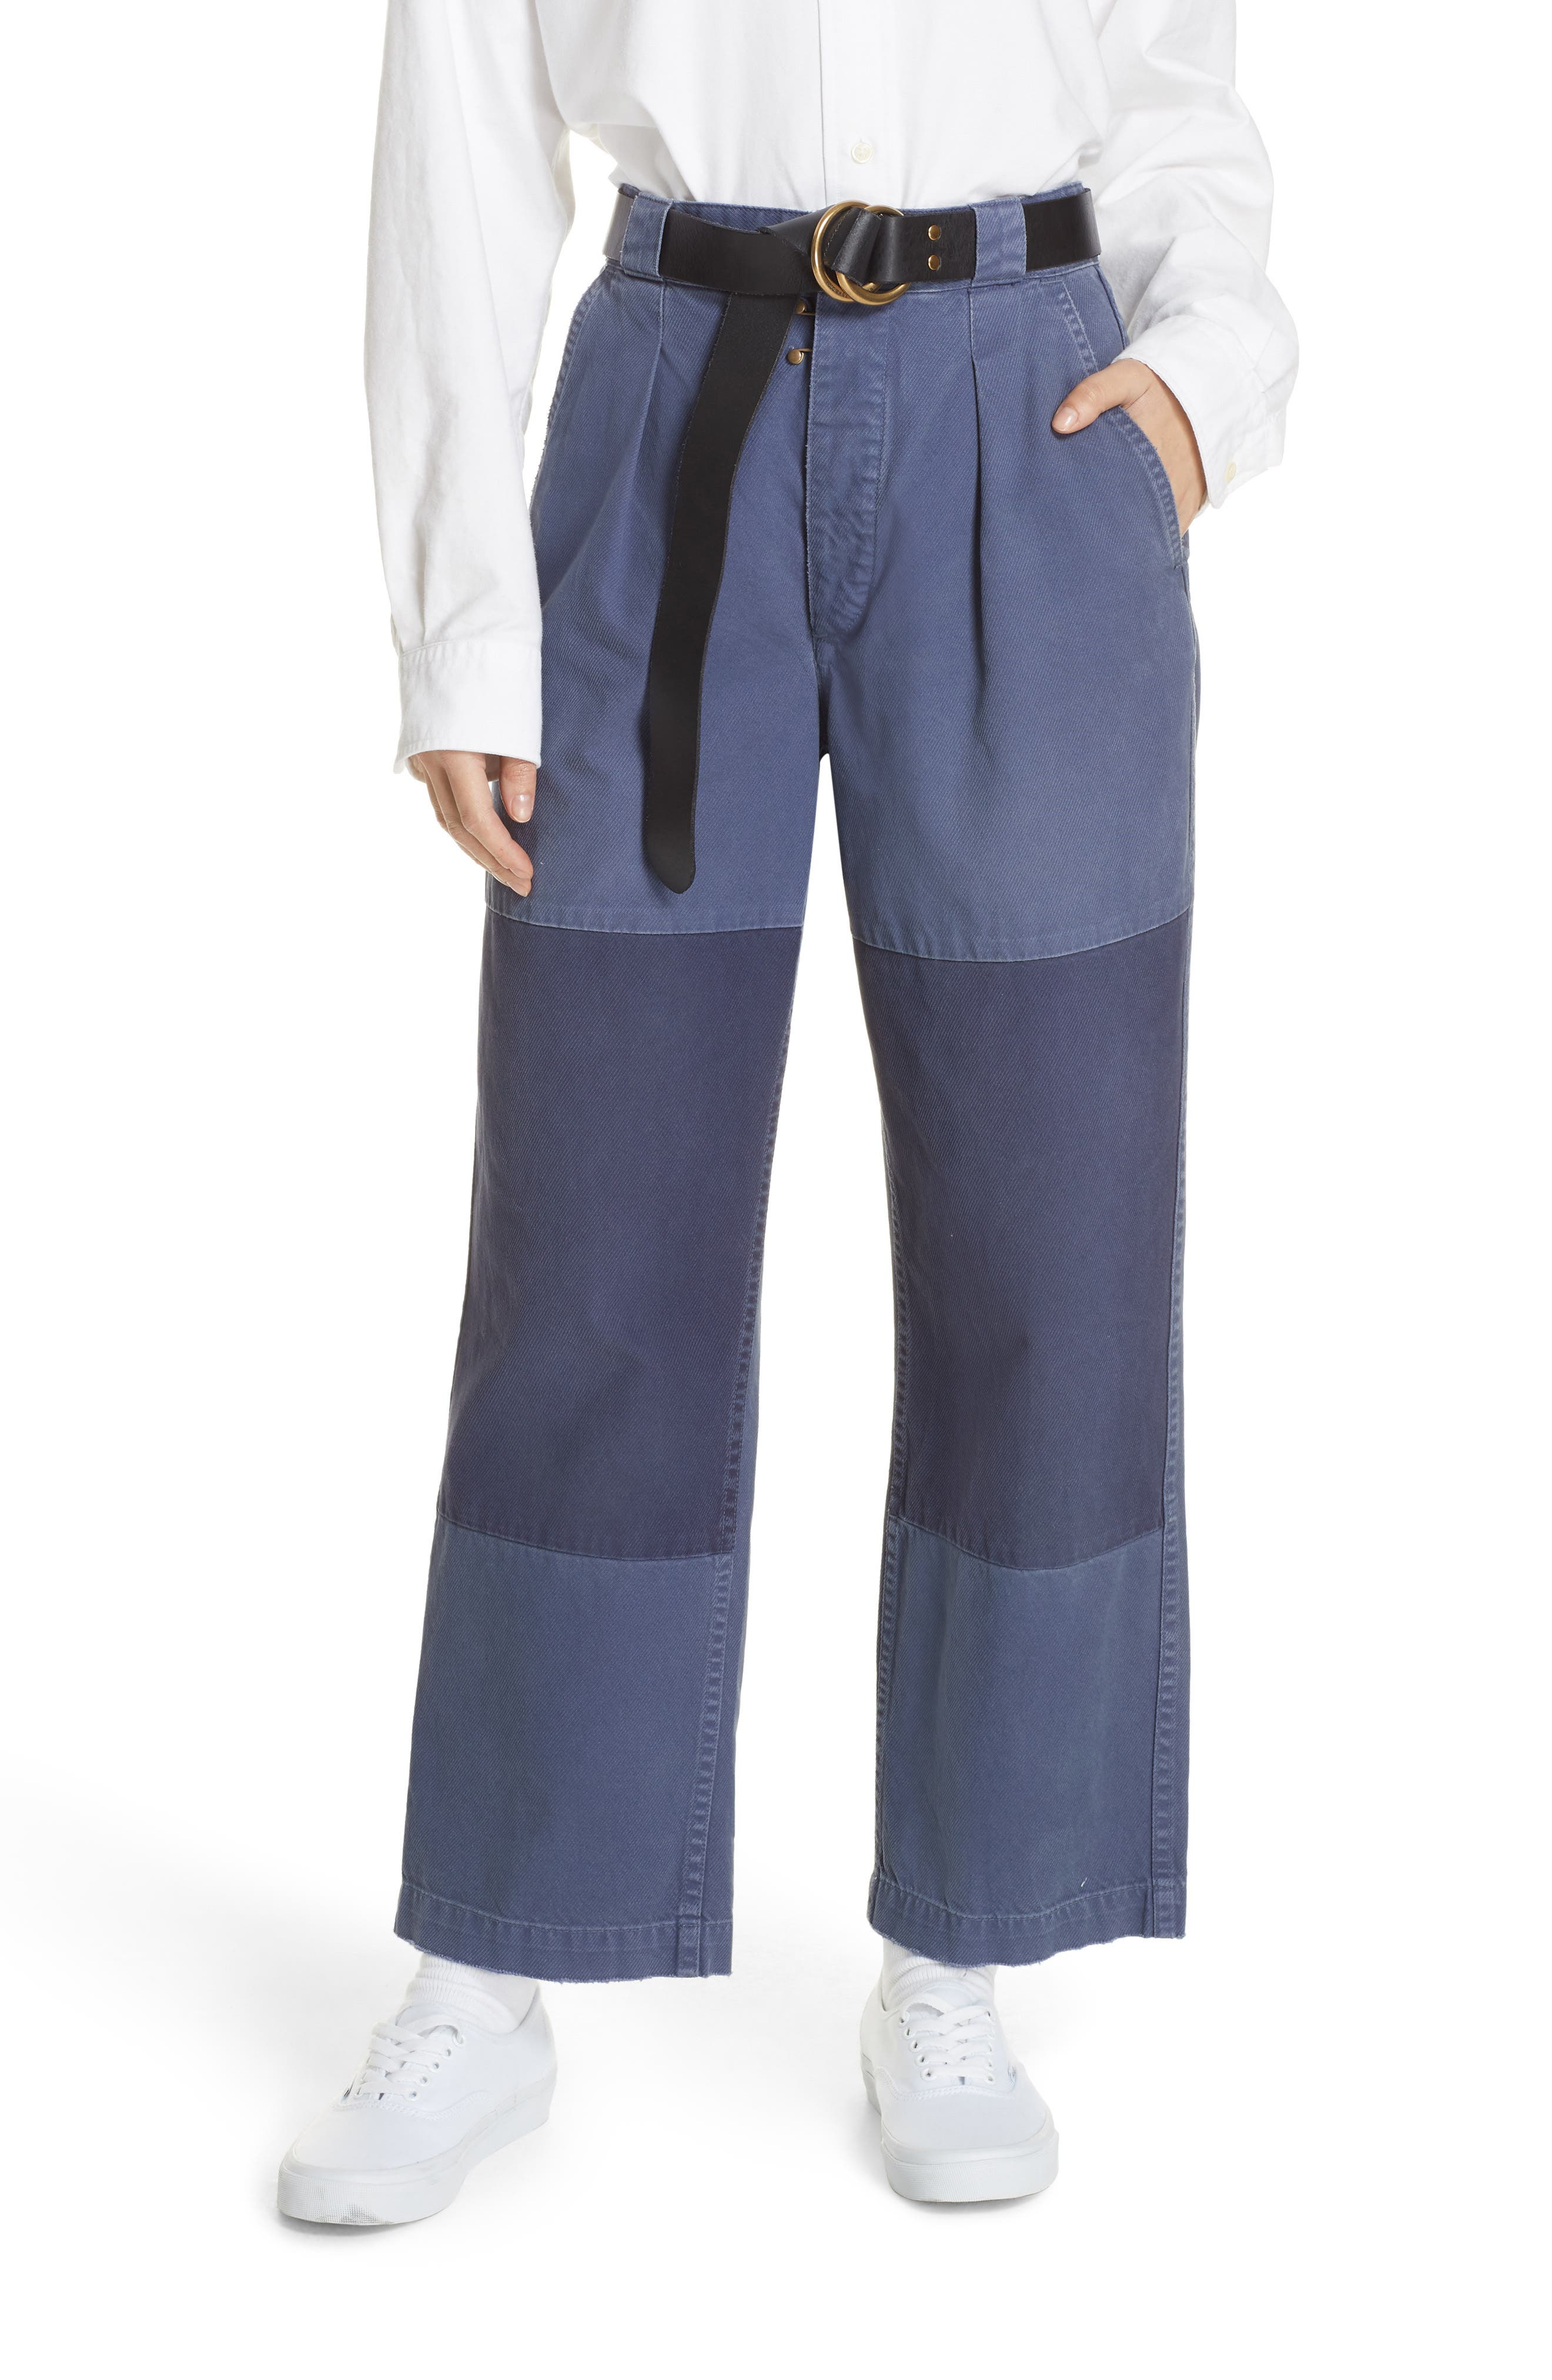 Patched Wide Leg Pants,                         Main,                         color, NEW CLASSIC NAVY/ LIGHT NAVY